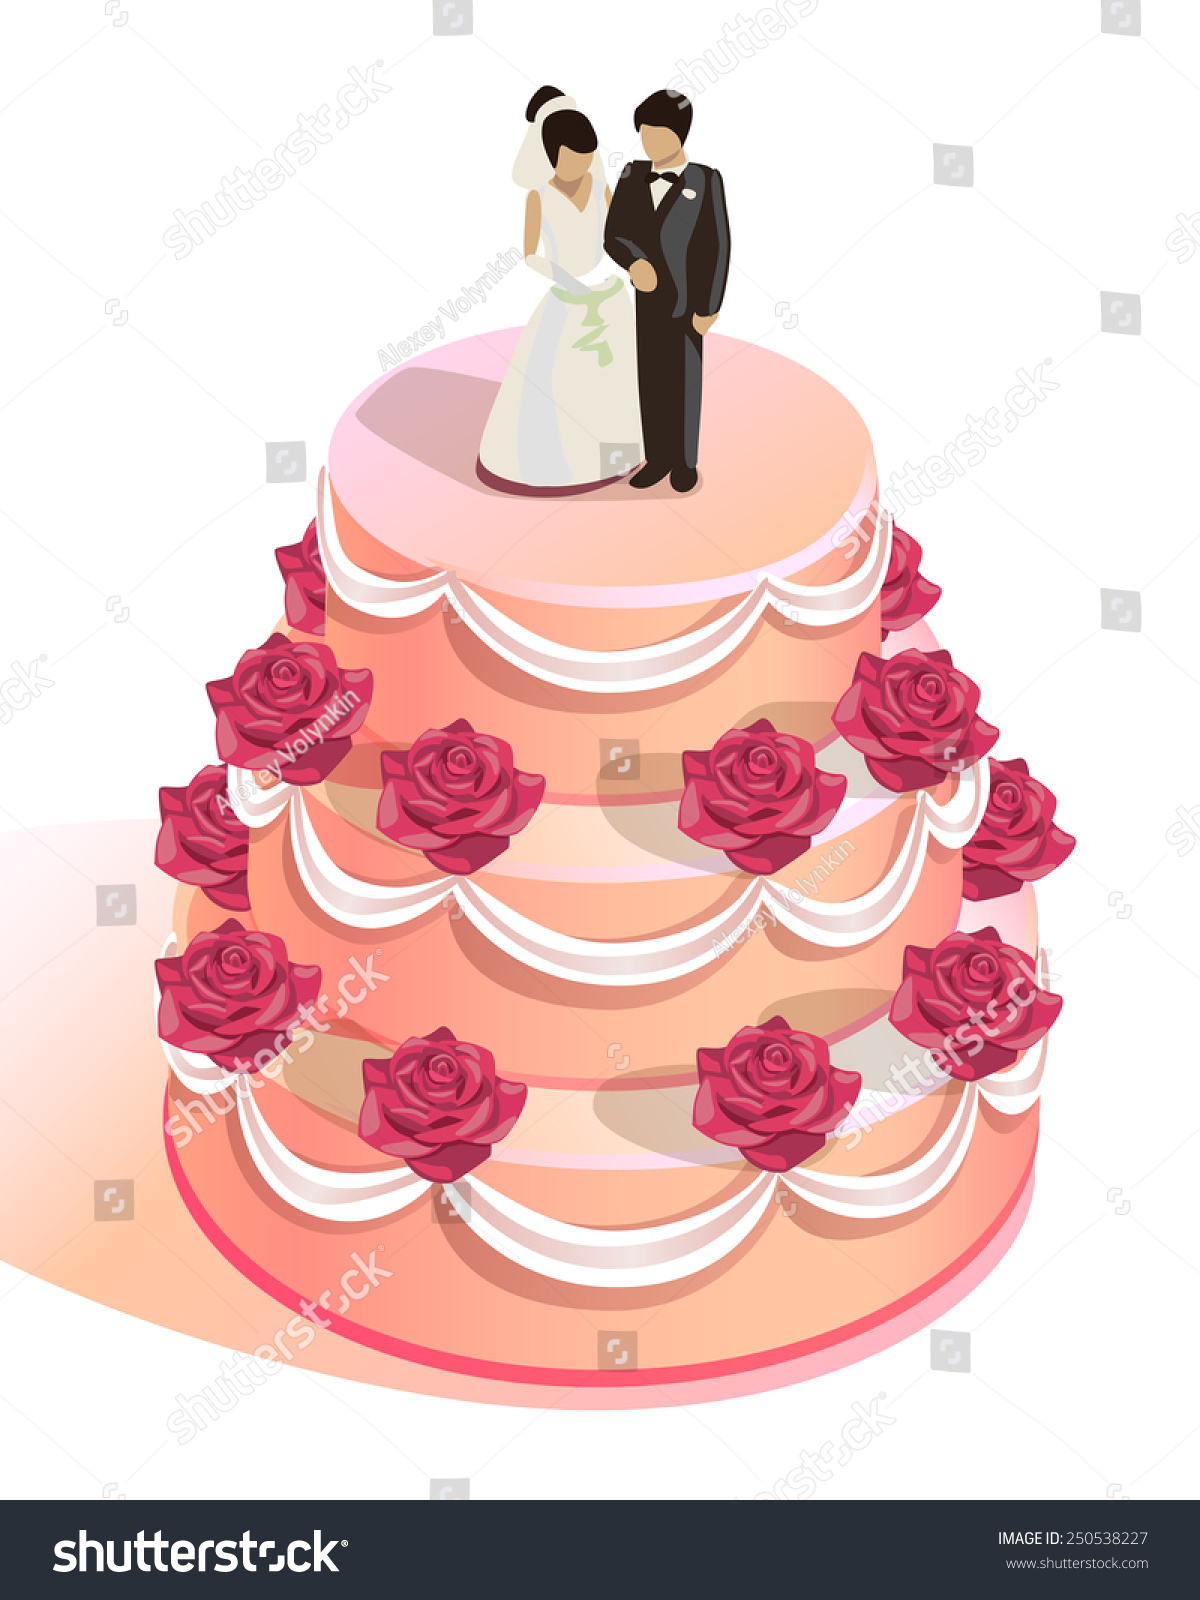 Round Wedding Cake Red Roses Bride Stock Vector (Royalty Free ...